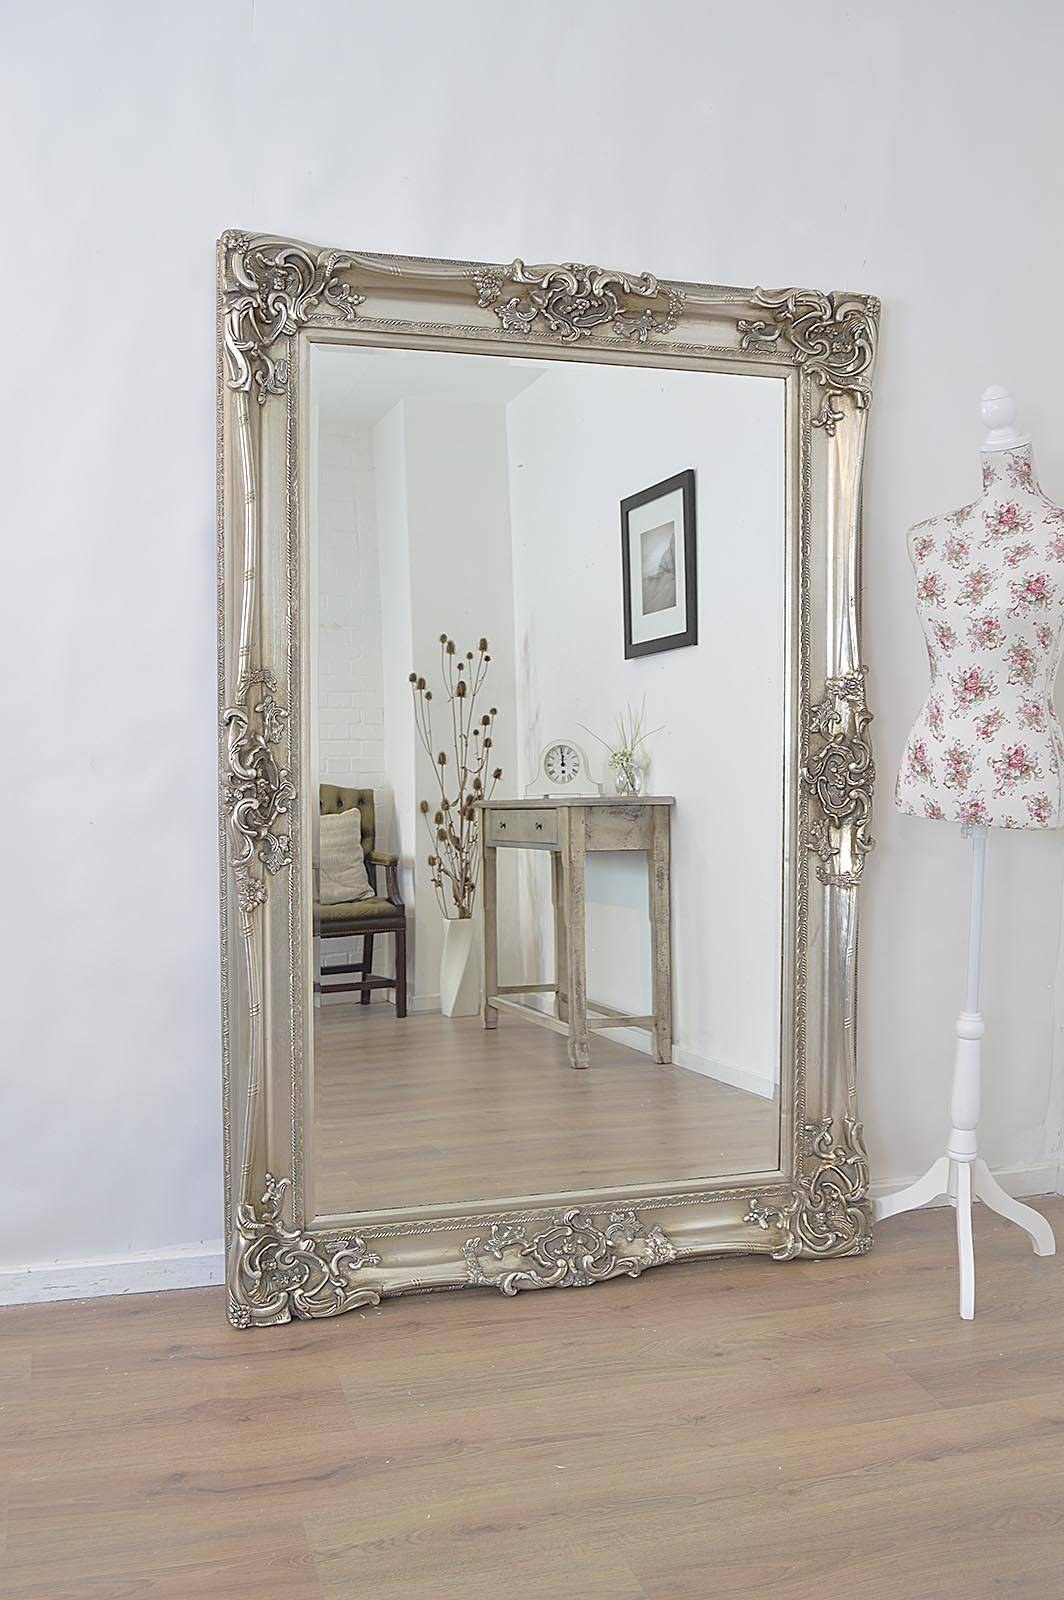 Pretty Vintage French Mirror And Antique French Floor Mirror pertaining to Massive Mirrors (Image 23 of 25)